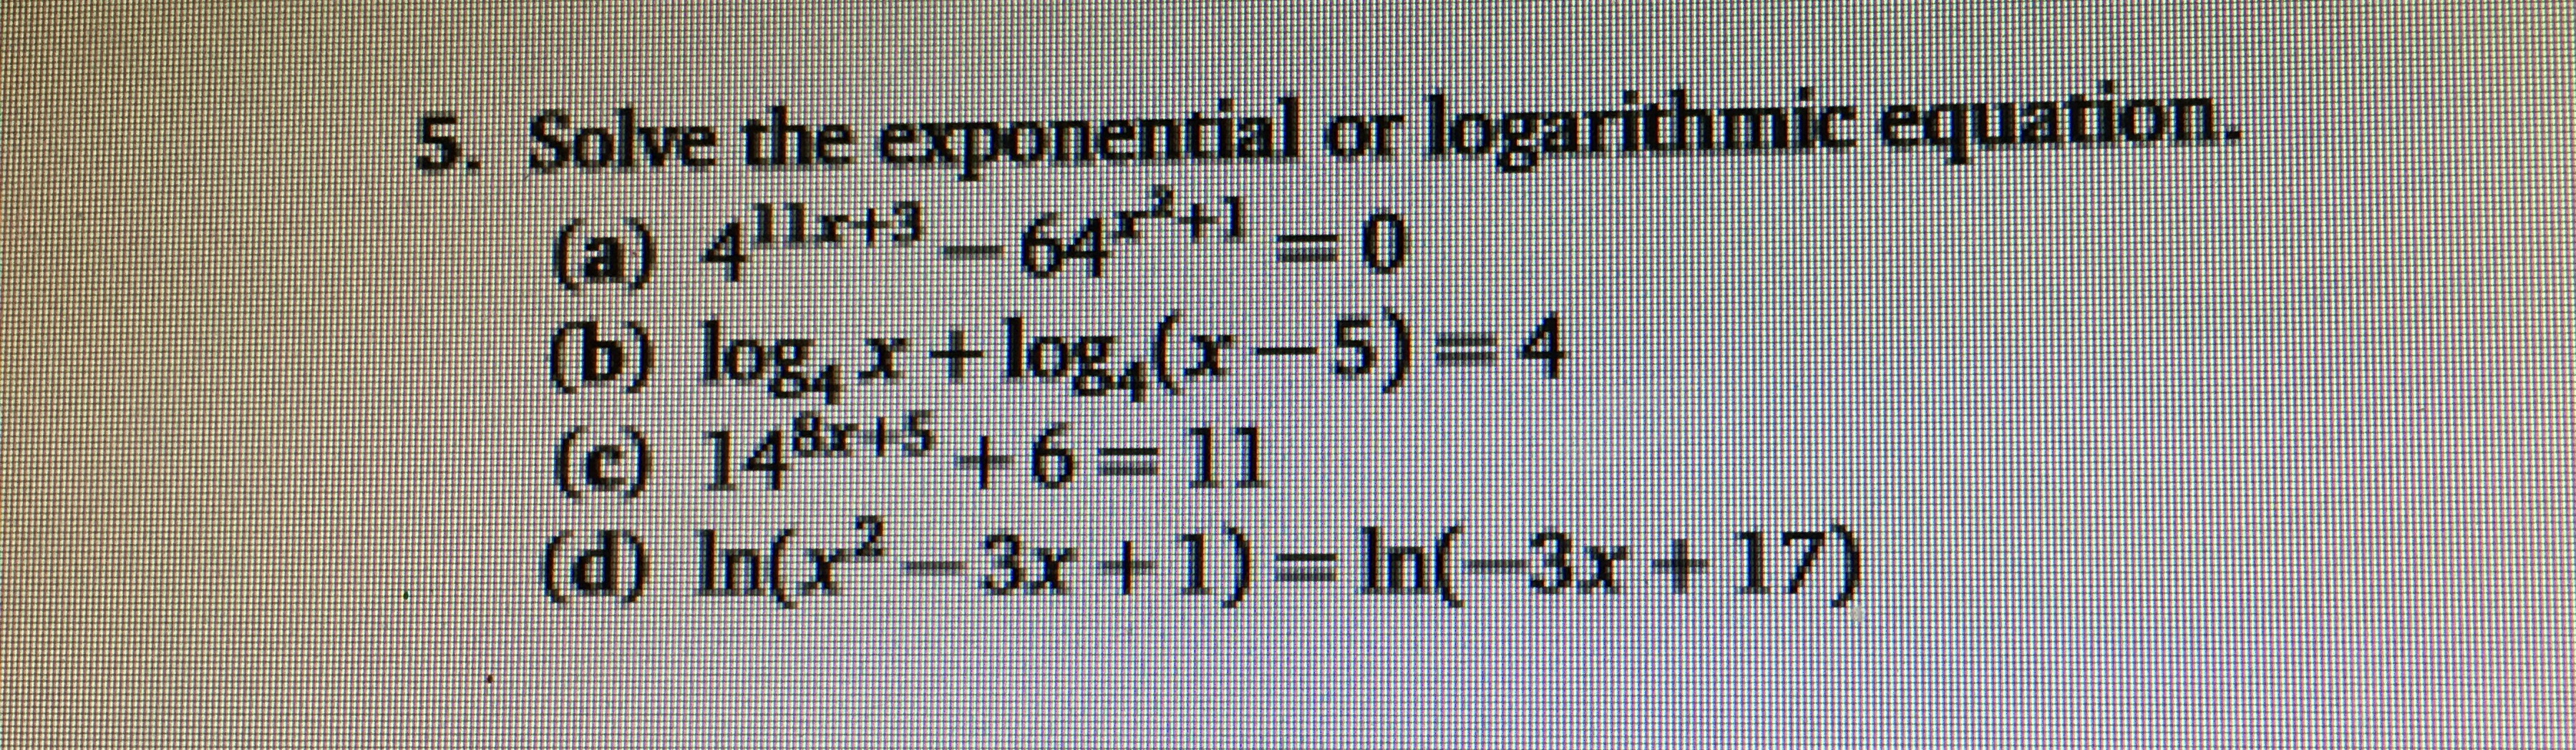 5. Solve the exponential or logarithmic equation. (a) 411rt3-64 0 Gு) log,r +log,(-5) * (c) 148+5 ++6-11 4 3x+ 1) In(-3x+ 17)